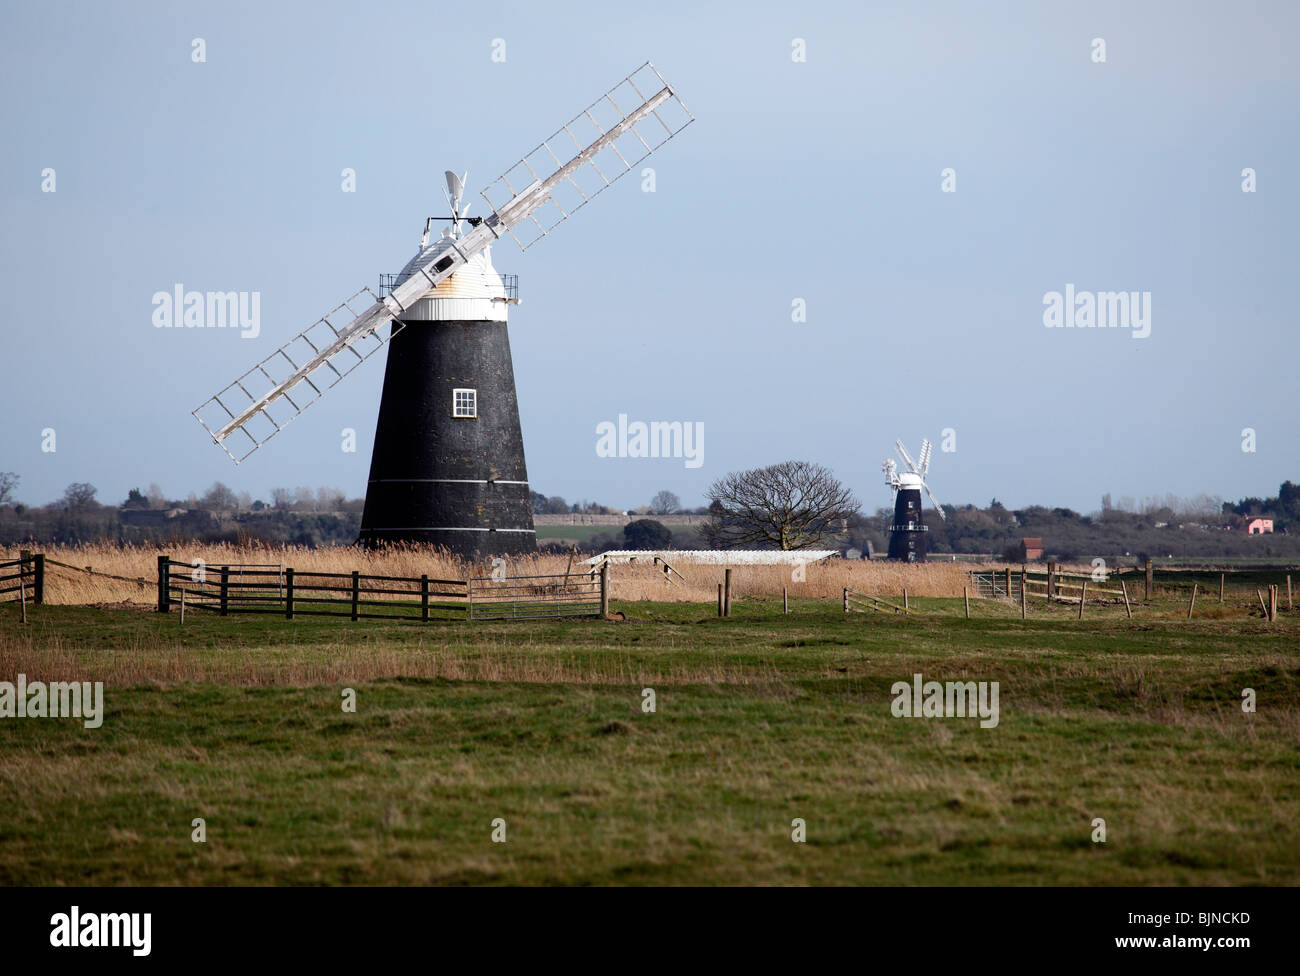 Le mouton et l'usine de drainage Drainage Bras Berney Mill, Marais Halvergate, Norfolk Broads Photo Stock